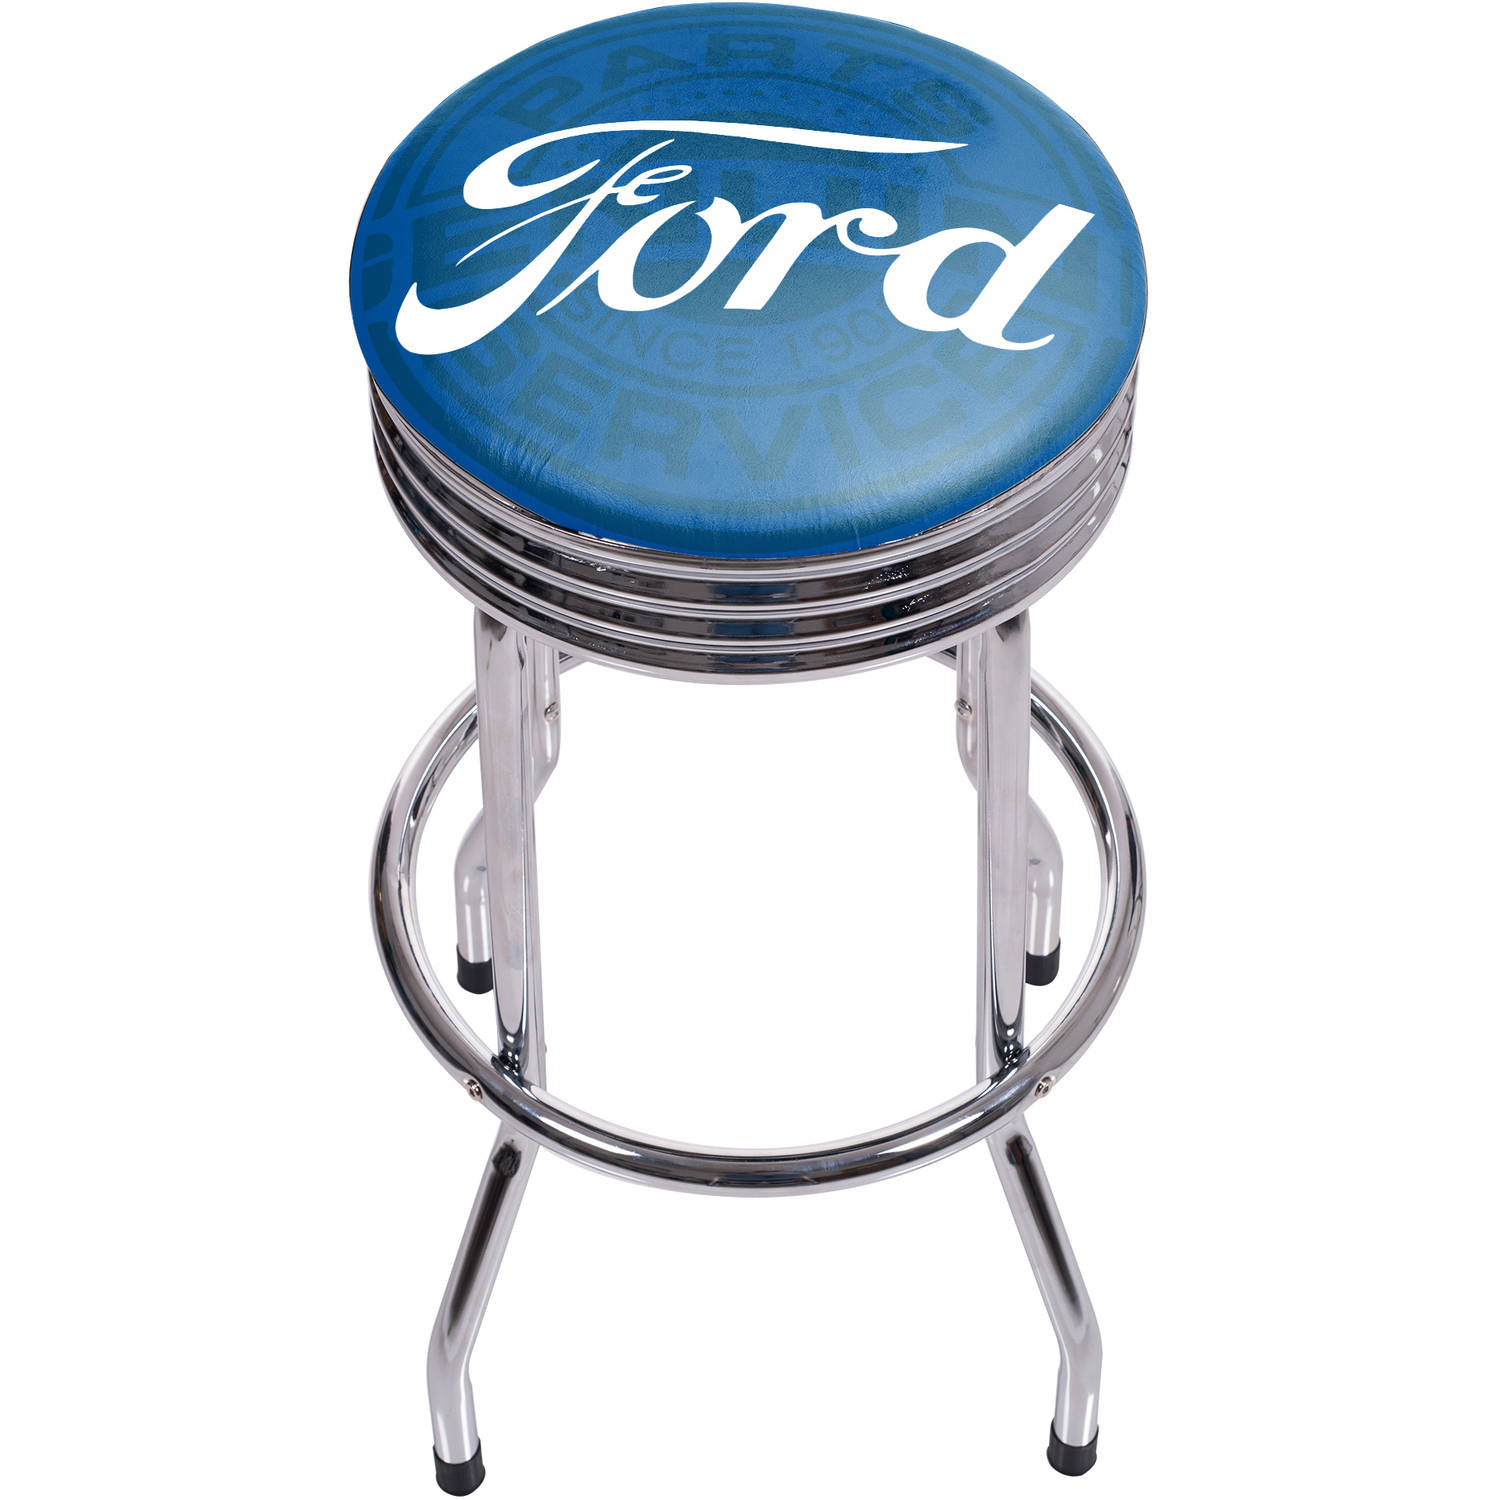 Ford Chrome Ribbed Bar Stool, Ford Genuine Parts